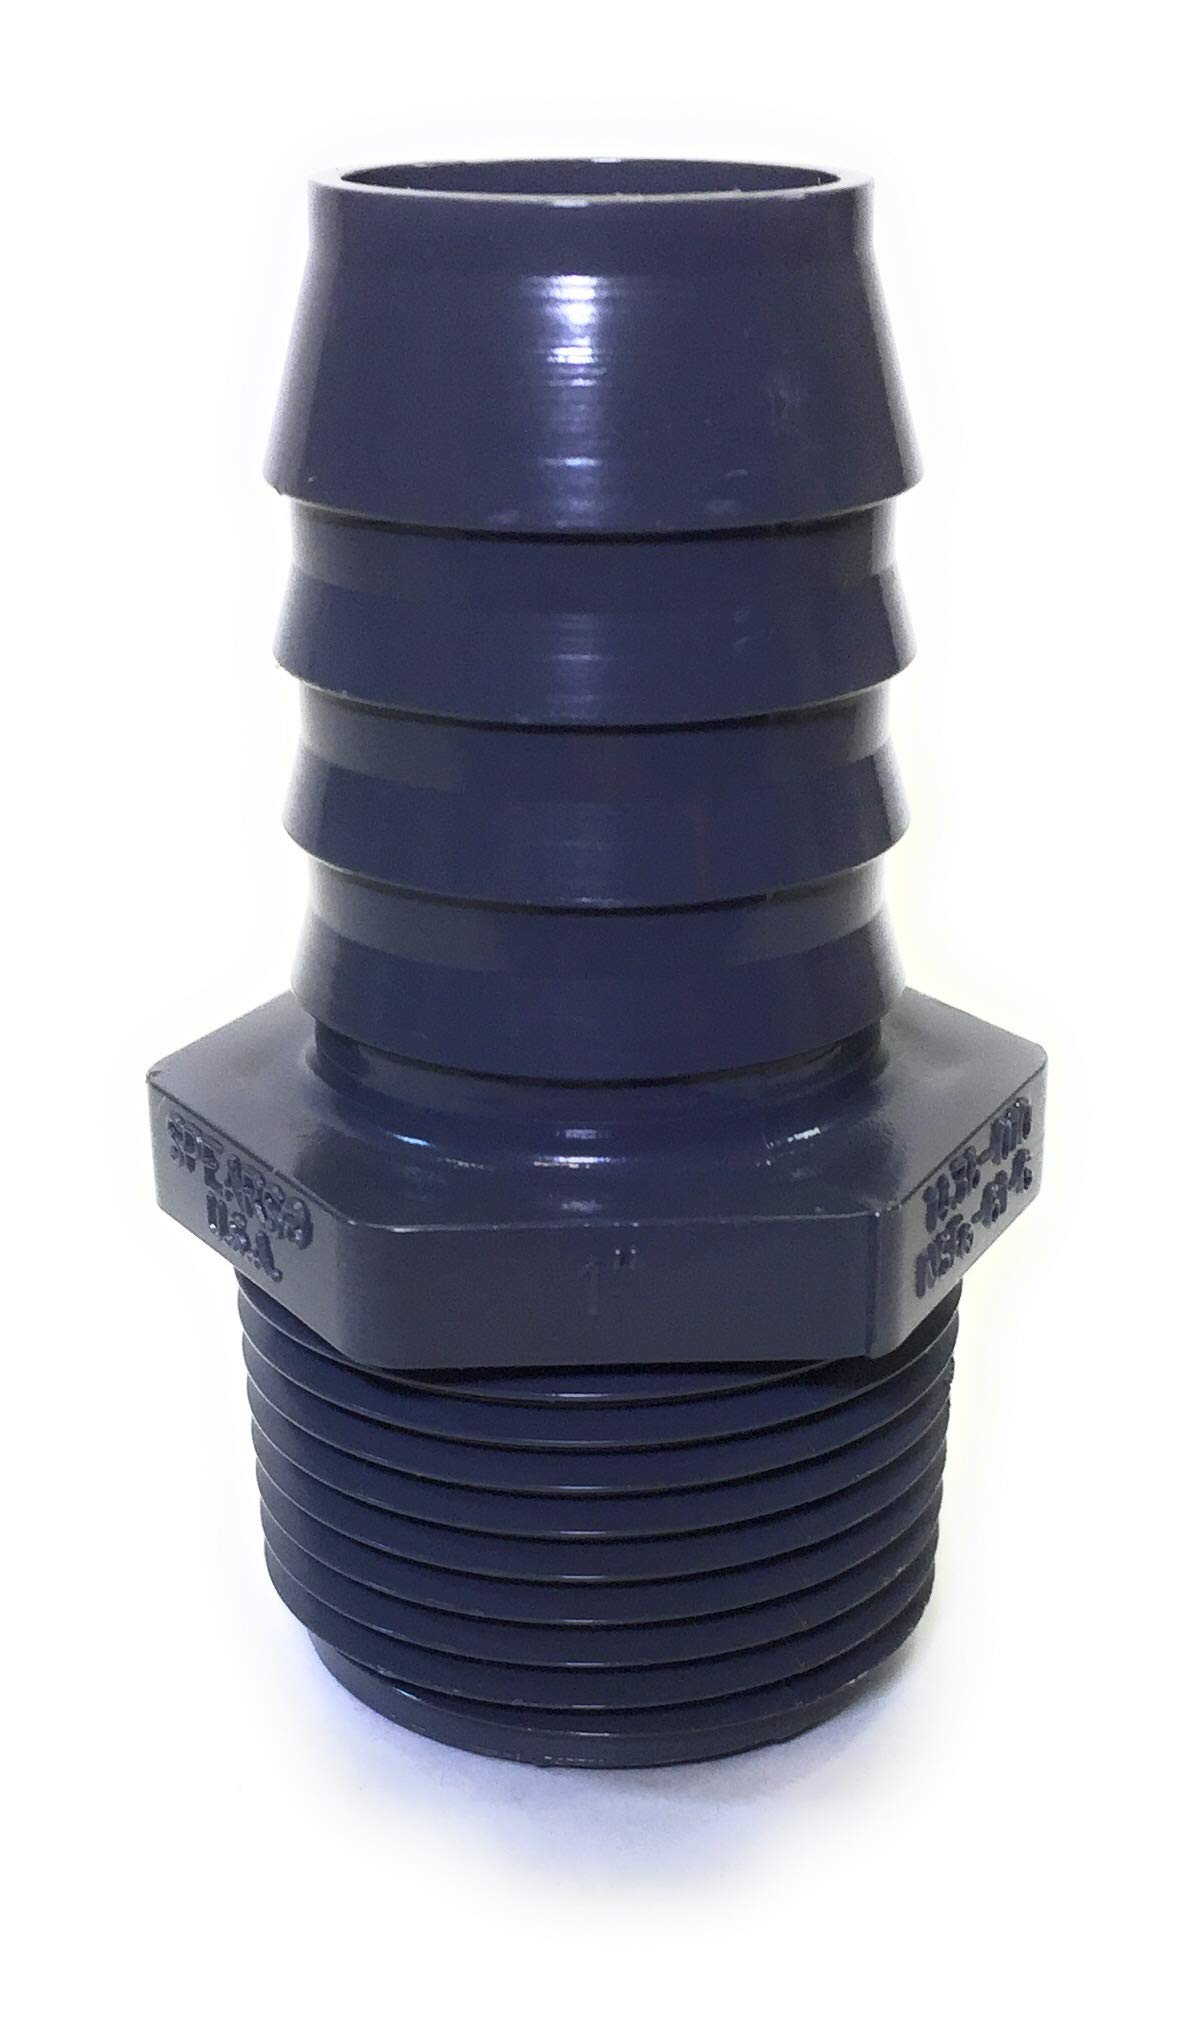 Gray 1//2 Barbed x NPT Male Adapter Schedule 40 Spears 1436 Series PVC Tube Fitting